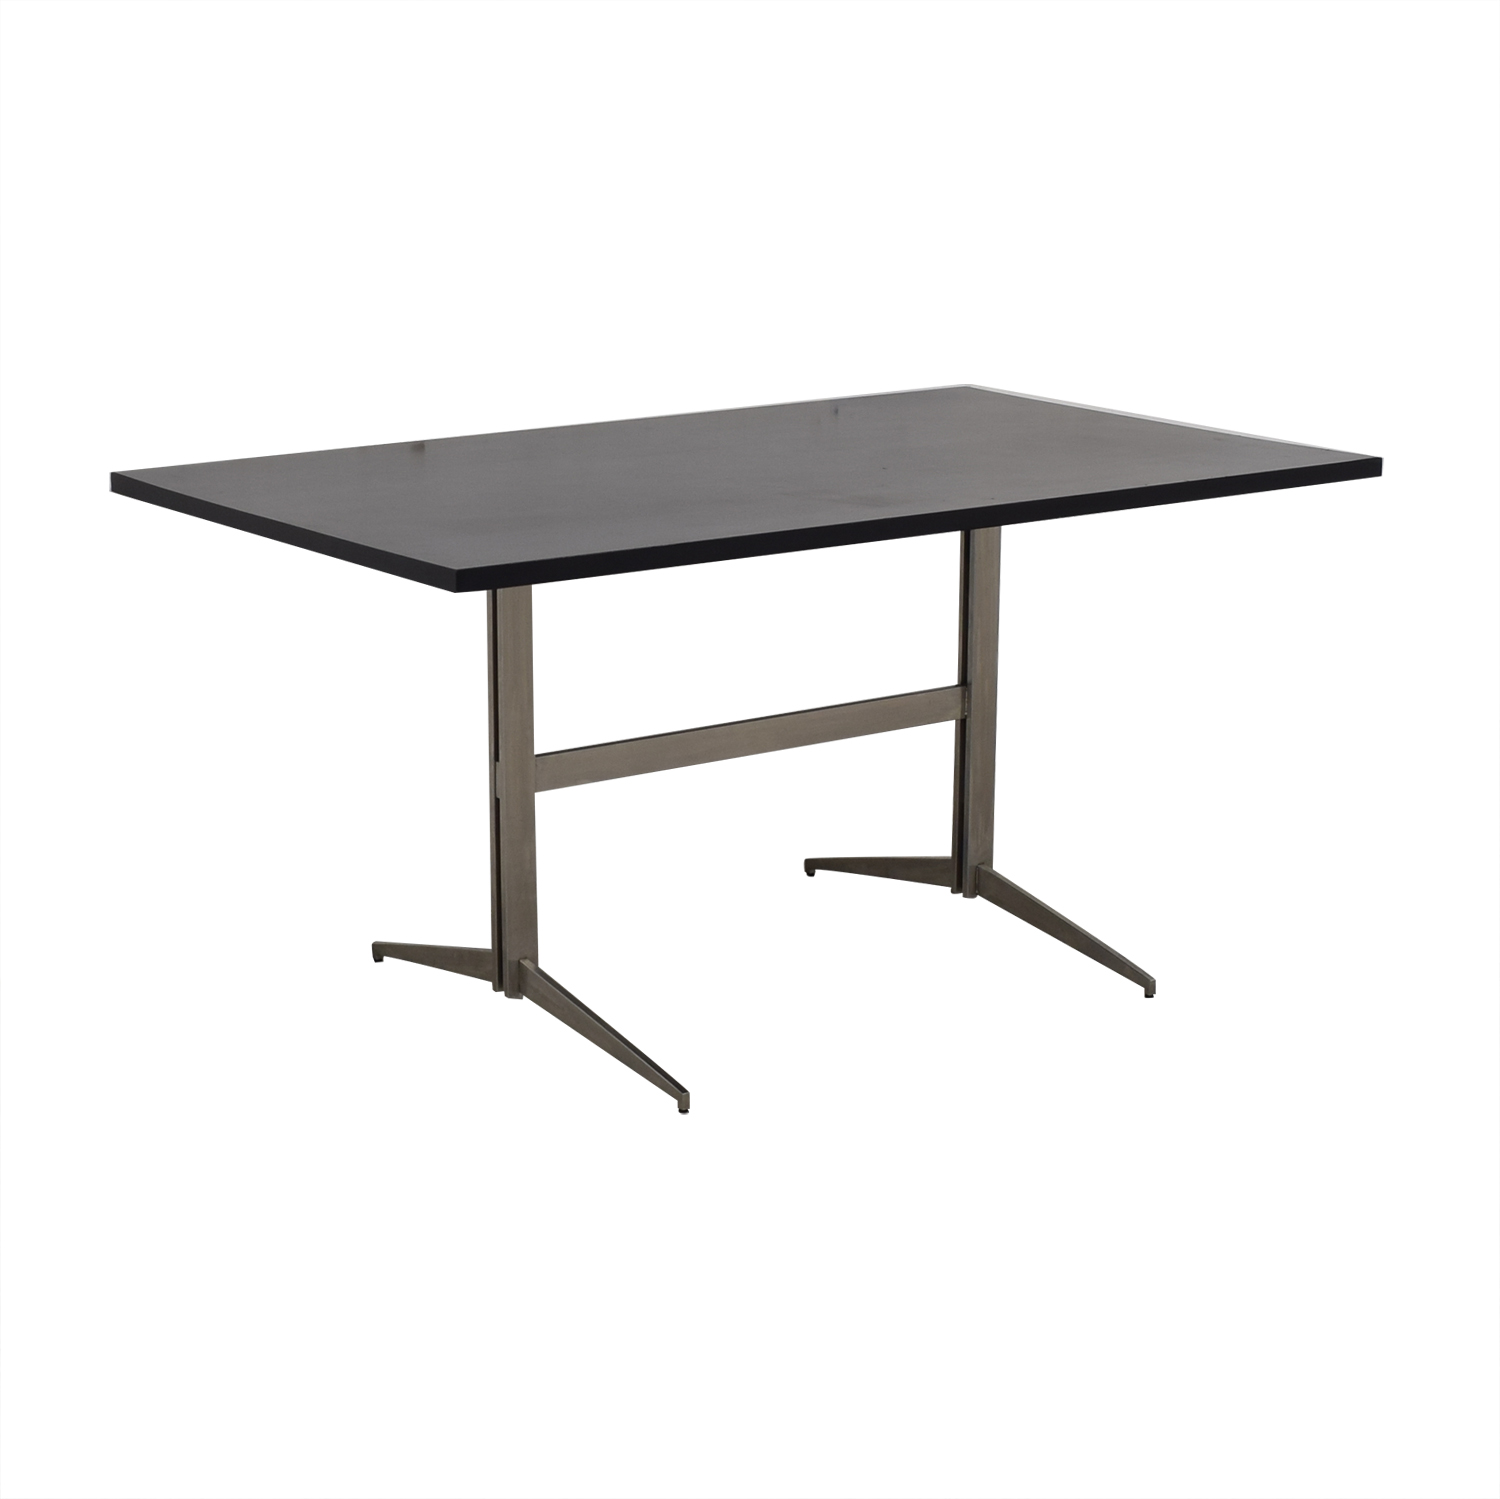 Room & Board Room & Board Dining Table for sale